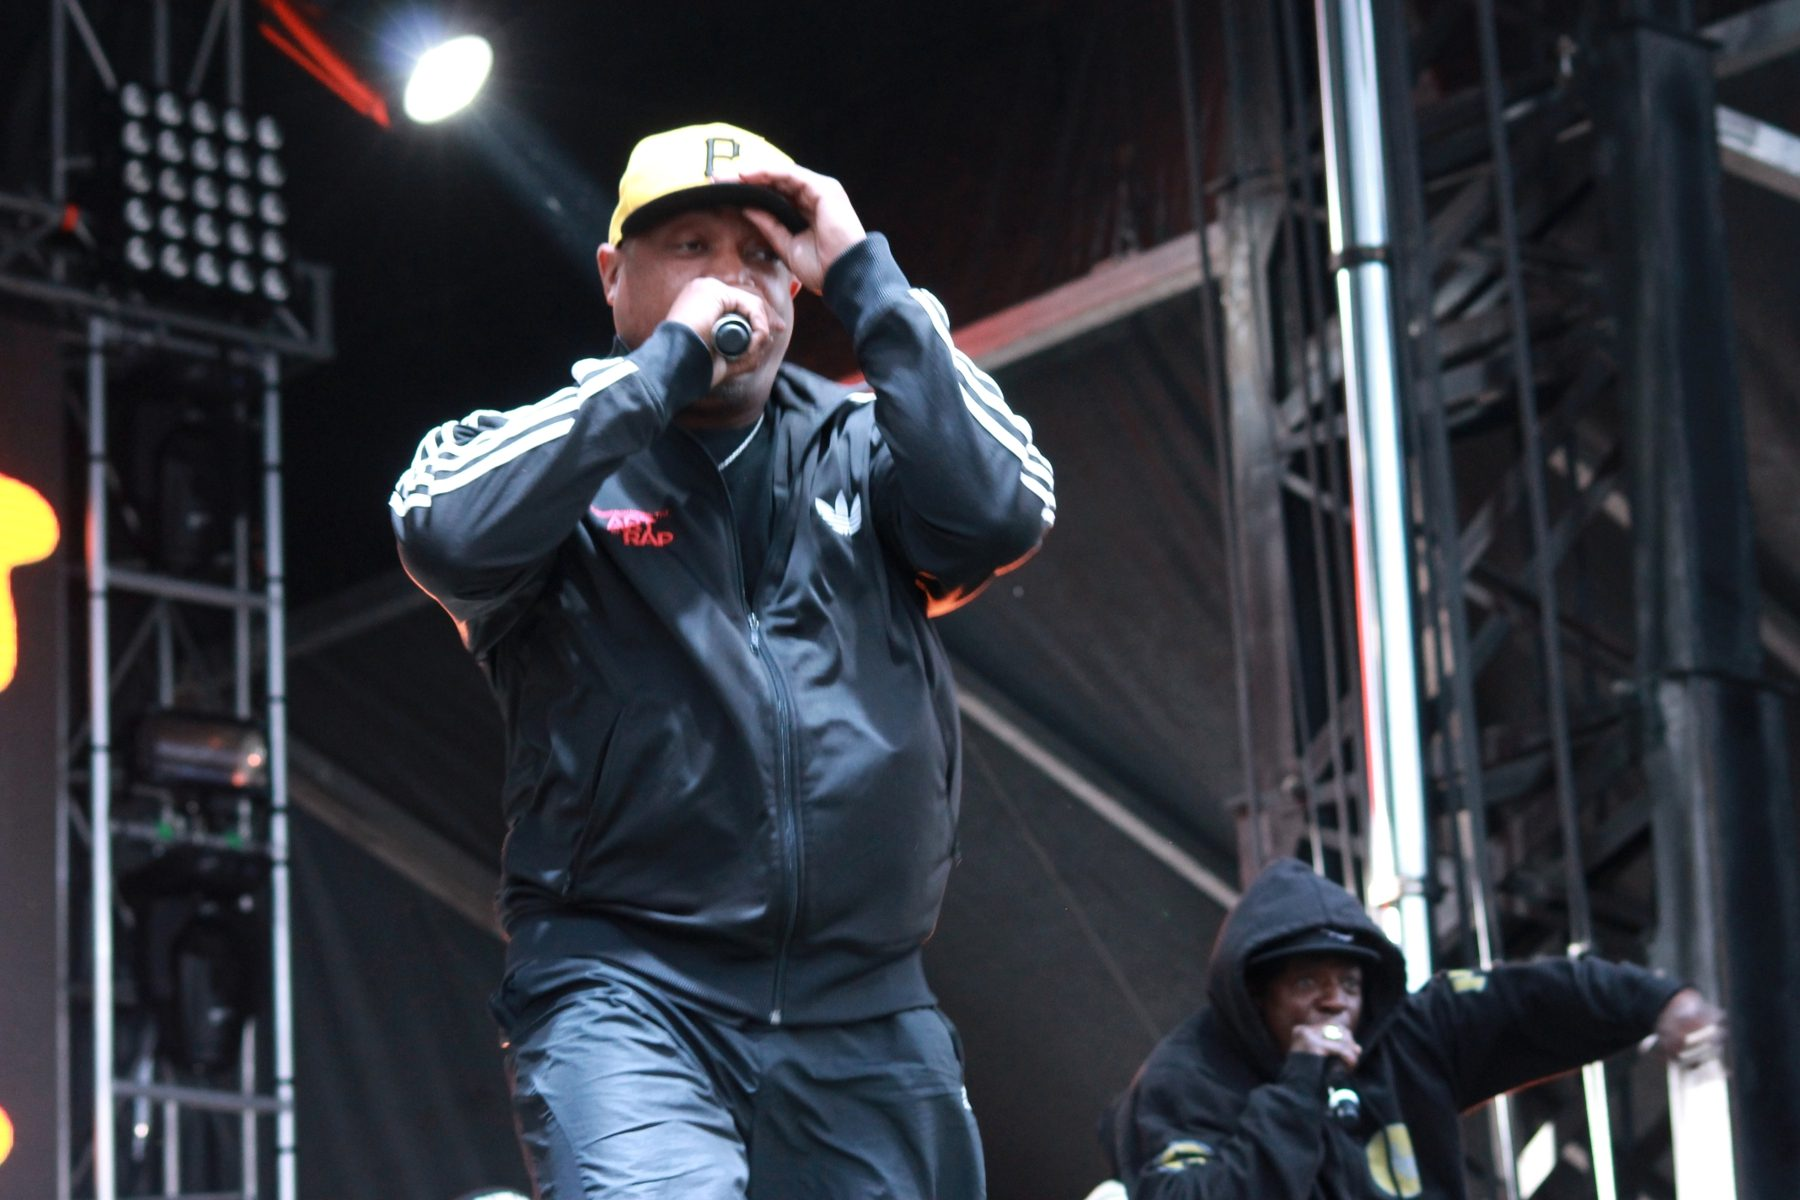 Ice T, Kurtis Blow, De La Soul, Chuck D, Naughty by Nature and More to Play Hip Hop Loves NY Live Benefit Event